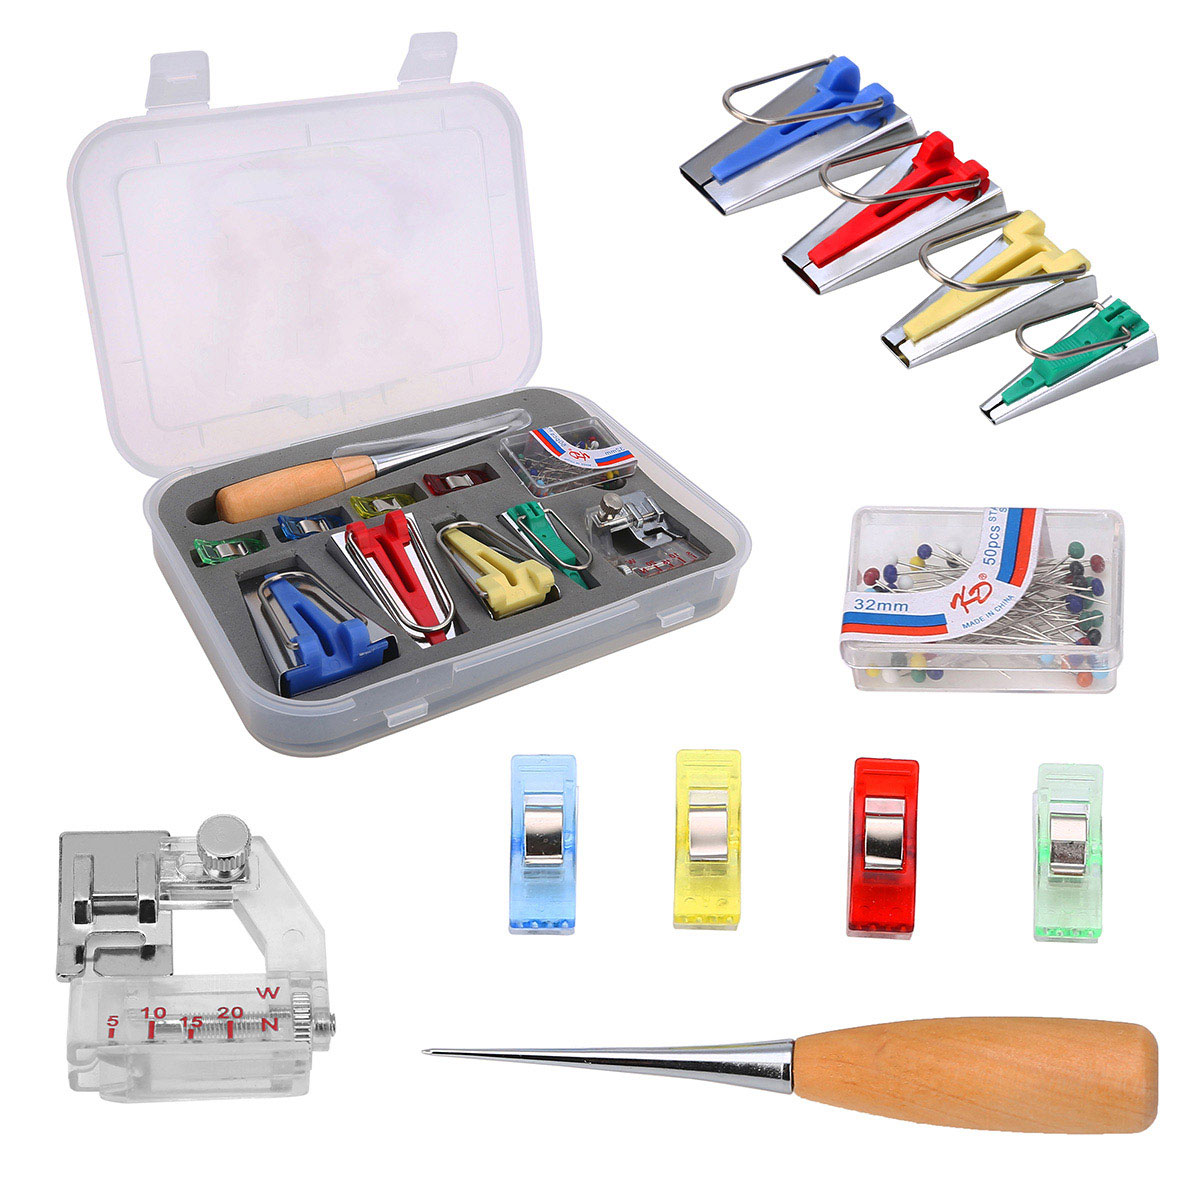 60pcs Fabric Bias Binding Tape Maker Kit Binder Foot Wooden Awl Clips Pins Household DIY Sewing Quilting Tool Set